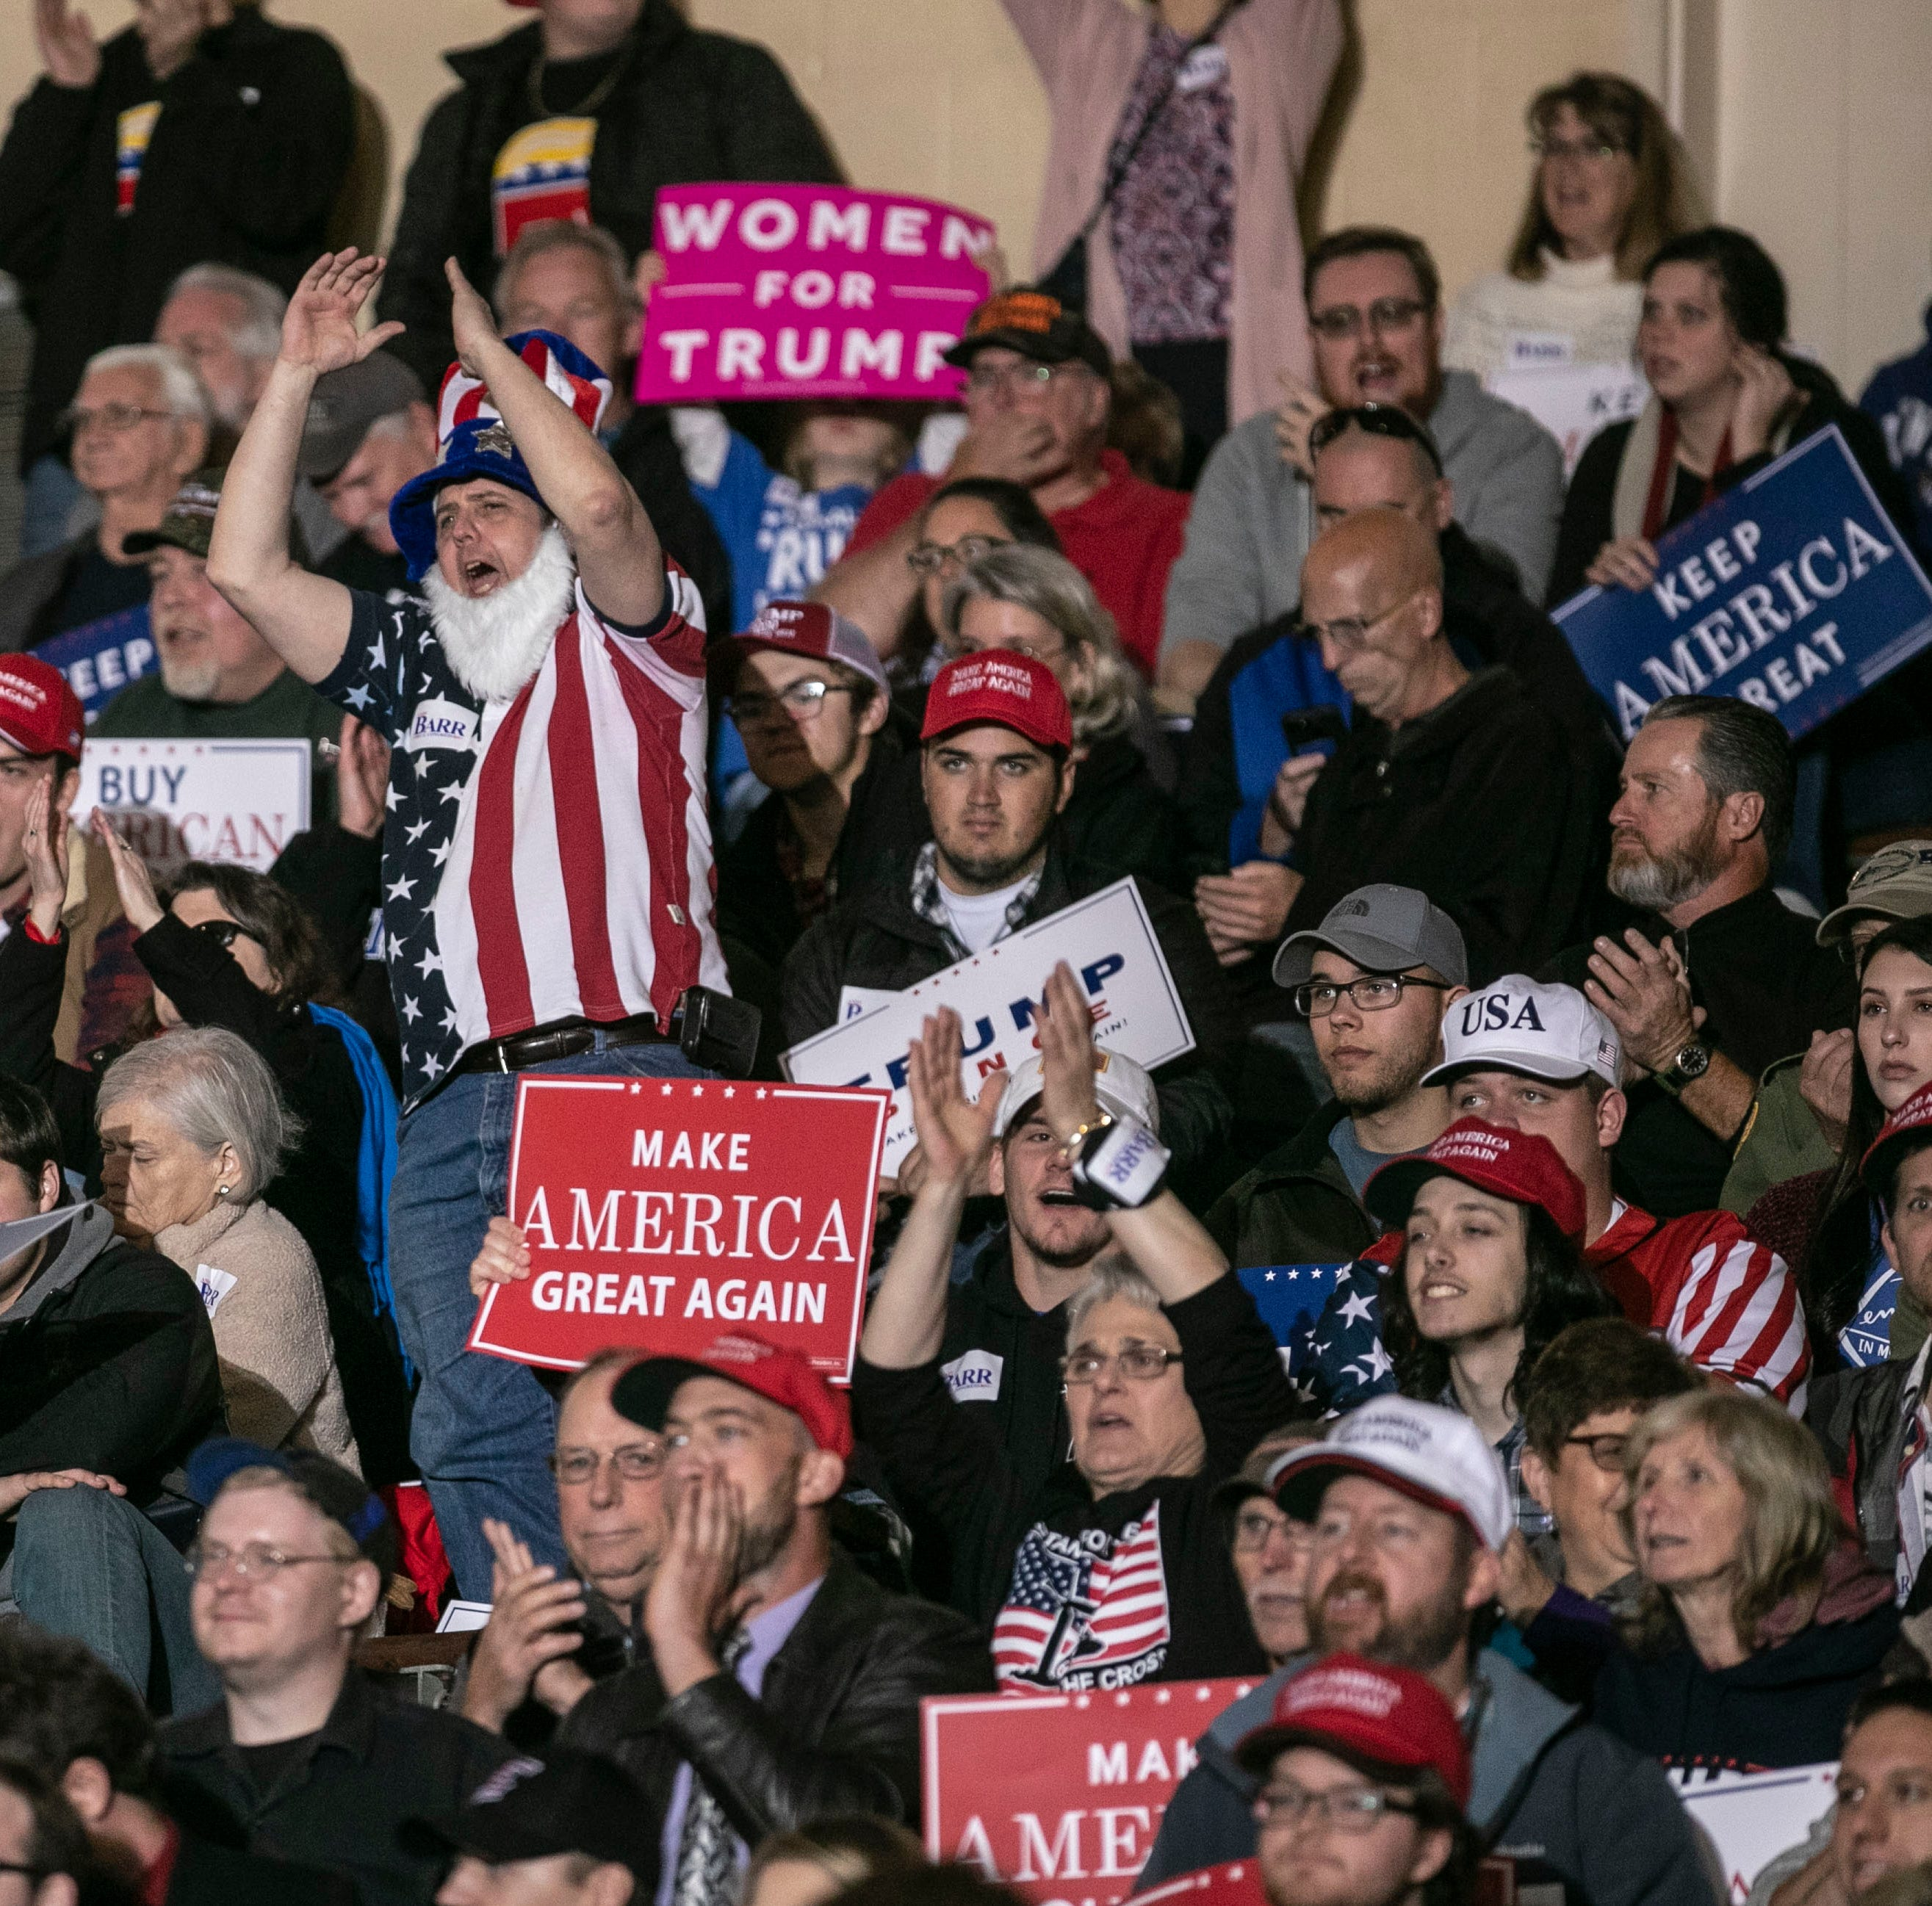 Trump rally in Richmond, Kentucky: What's happening live